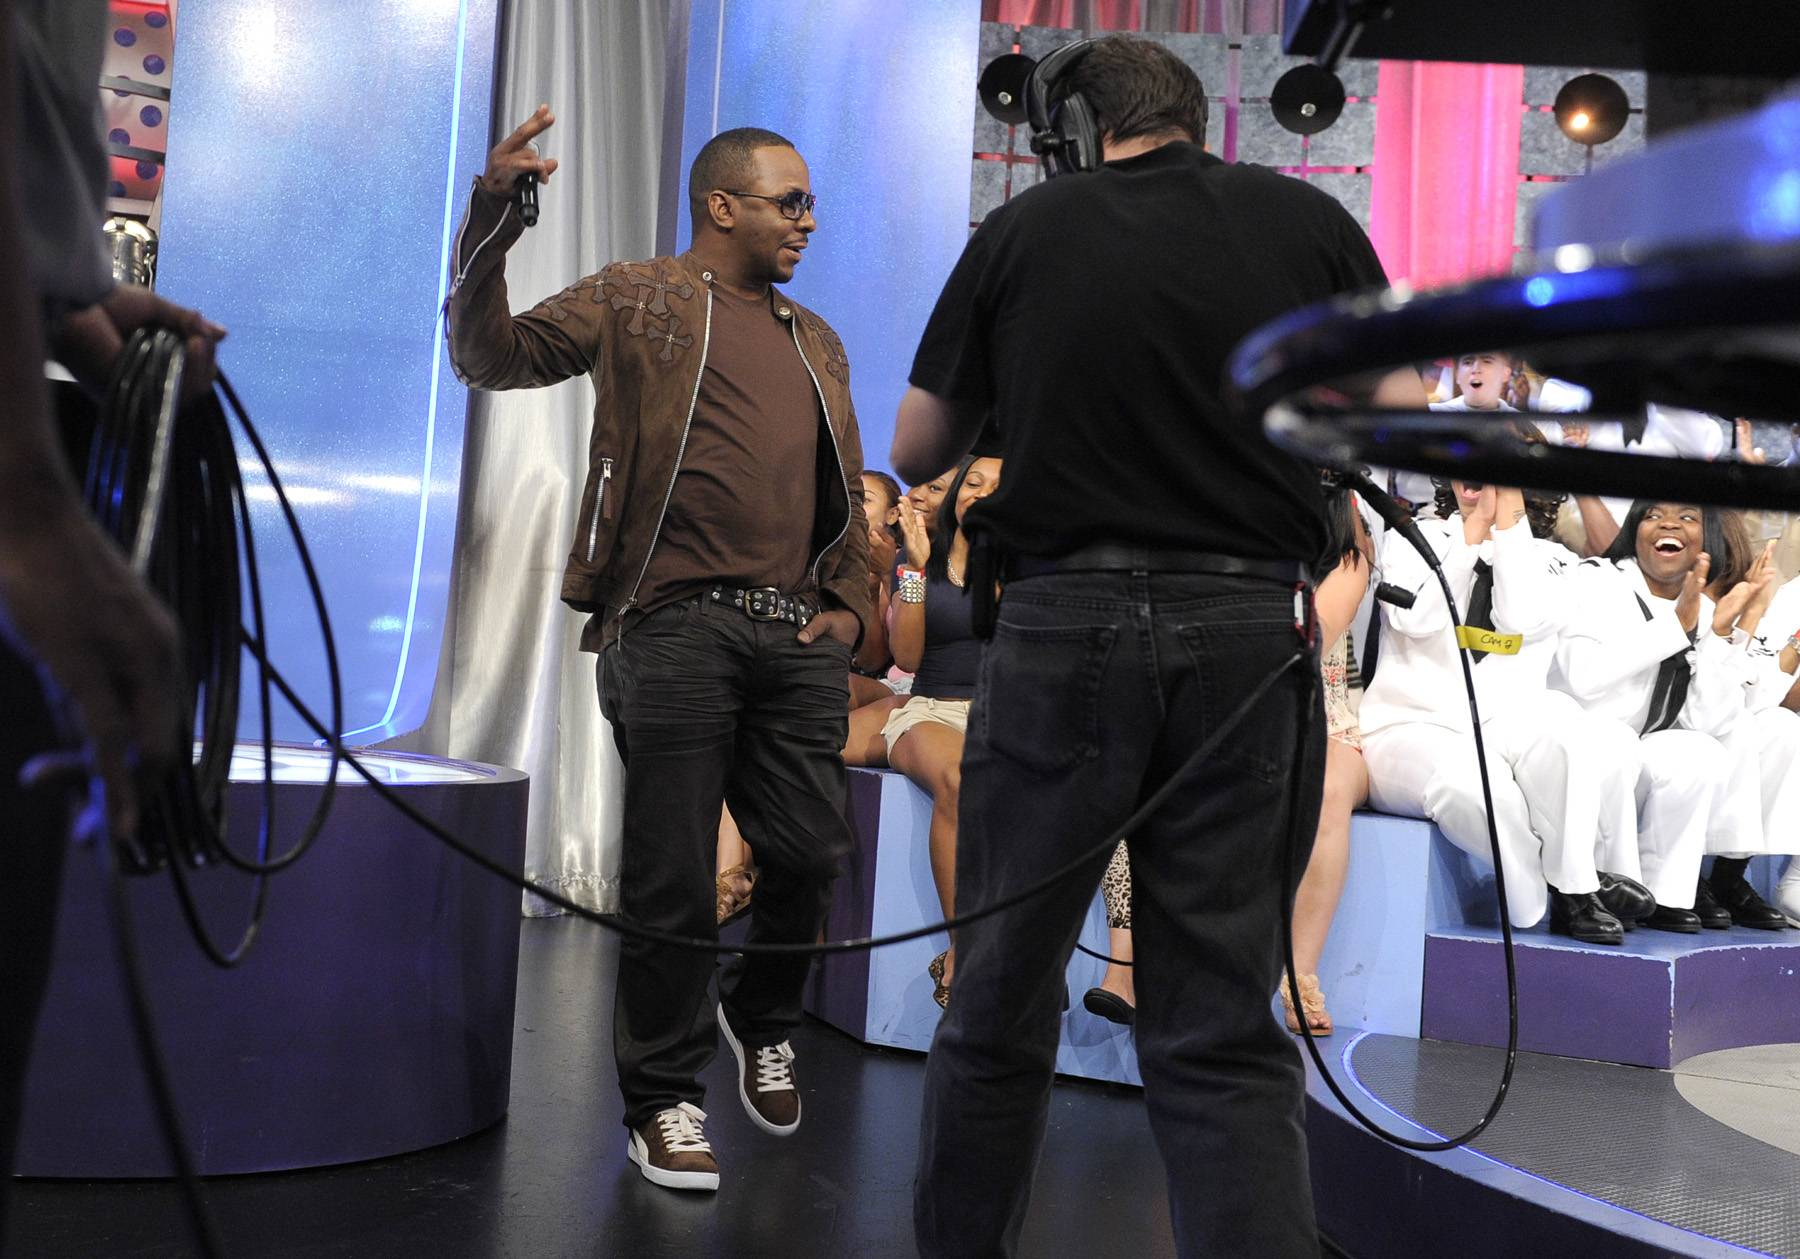 Come on Down - Bobby Brown takes the stage at 106 & Park, May 29, 2012. (Photo: John Ricard / BET)